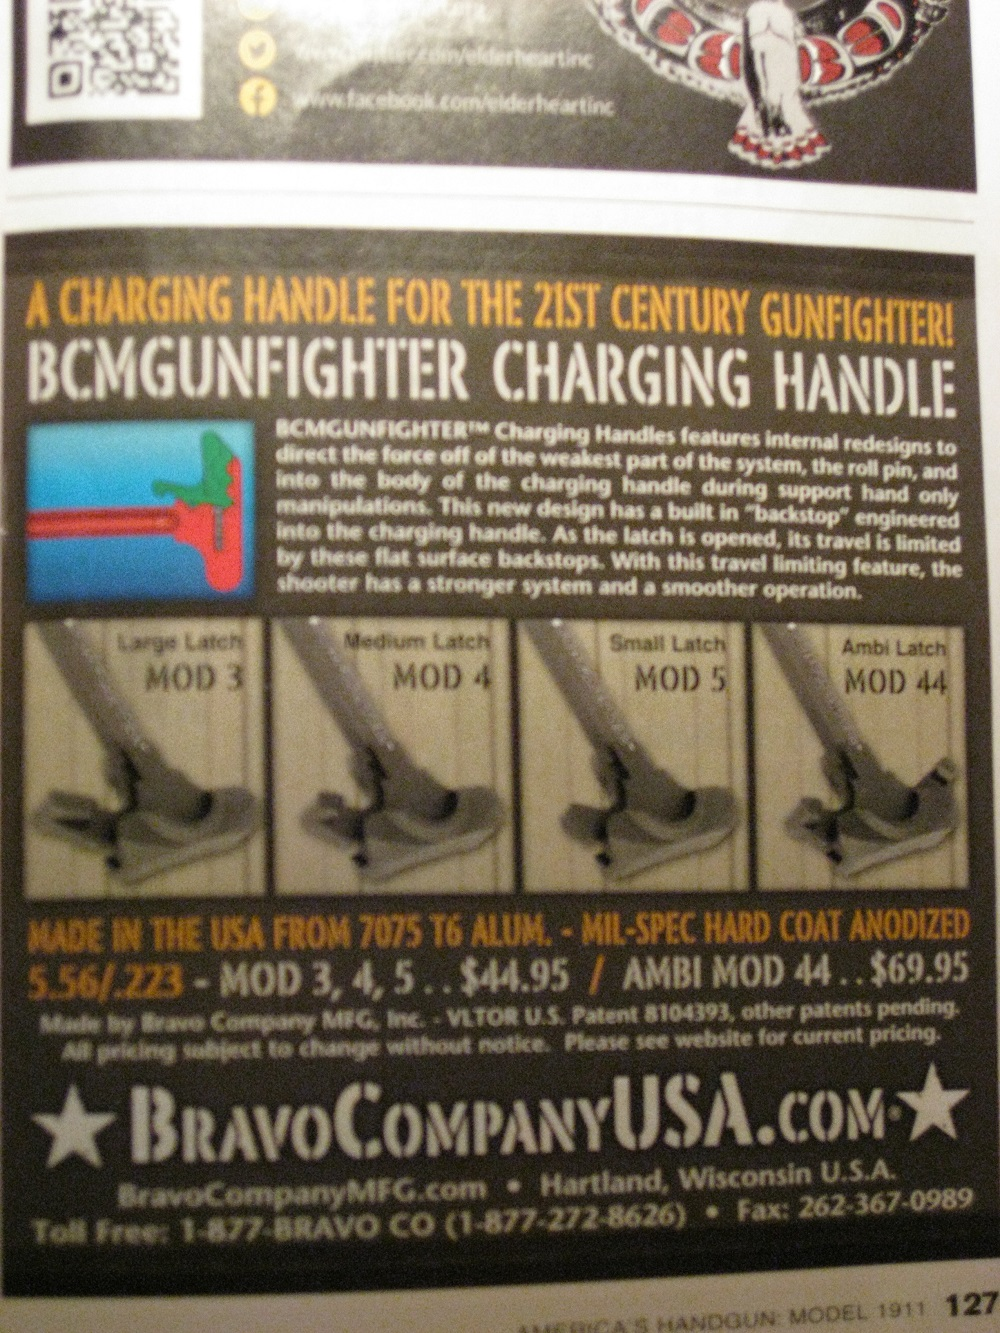 Variations in AR Charging Handles